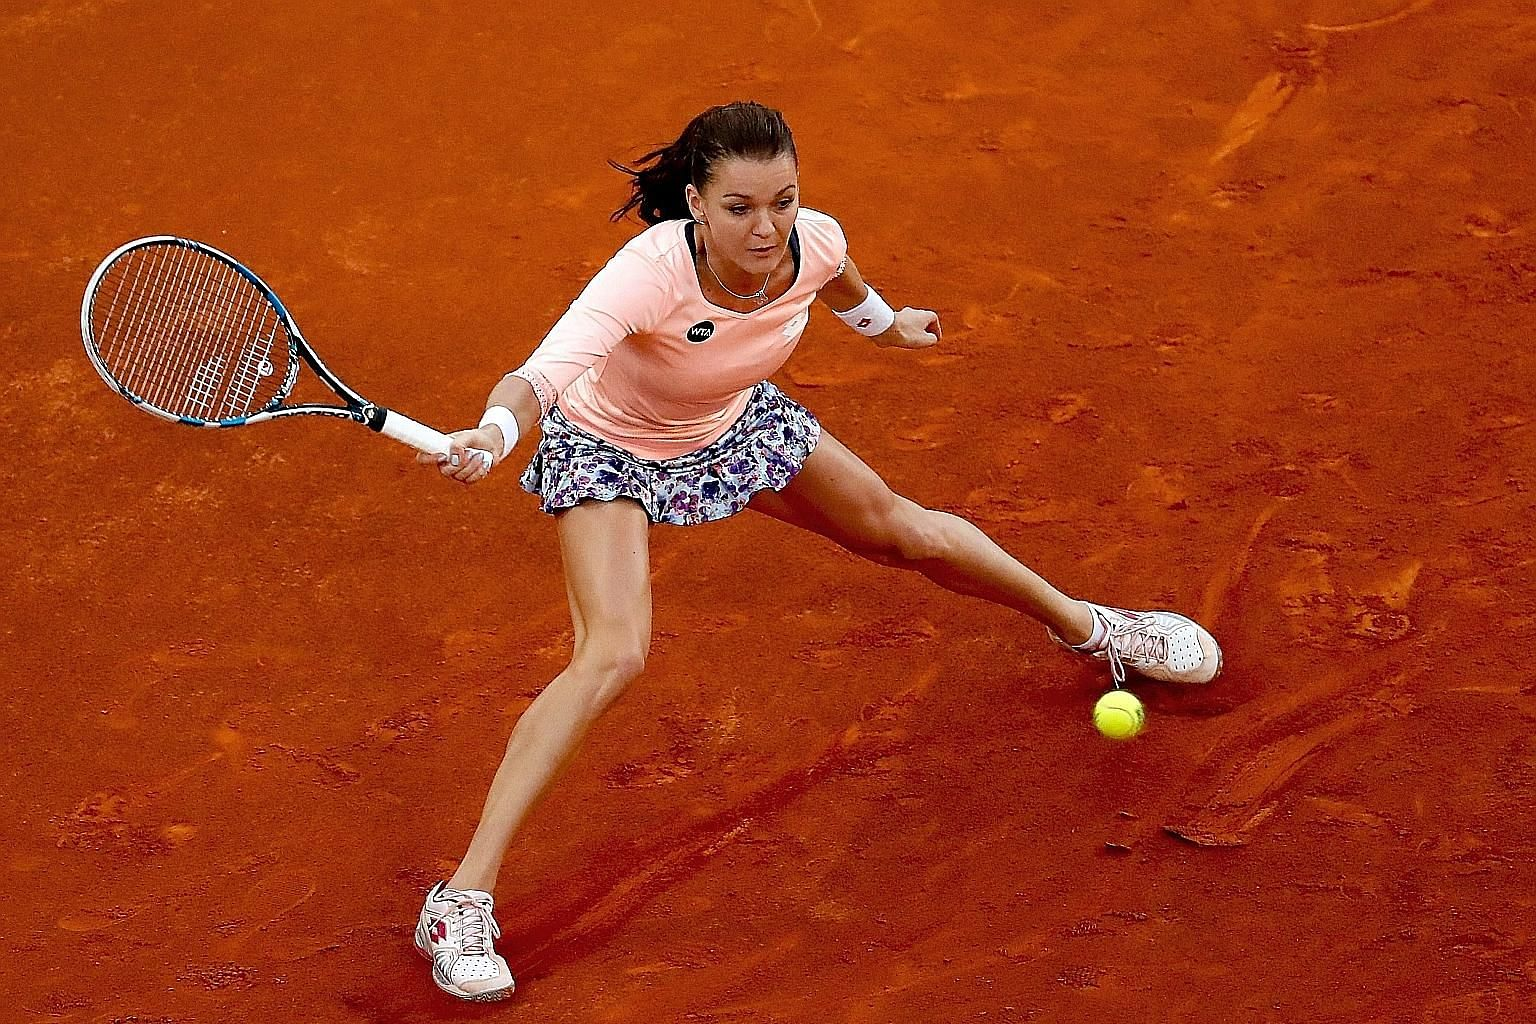 Agnieszka Radwanska says that clay is not her favourite surface, even though she grew up playing on it in Poland. The world No. 3, who lost in the first round of the French Open last year, is looking forward to making amends at Roland Garros this yea